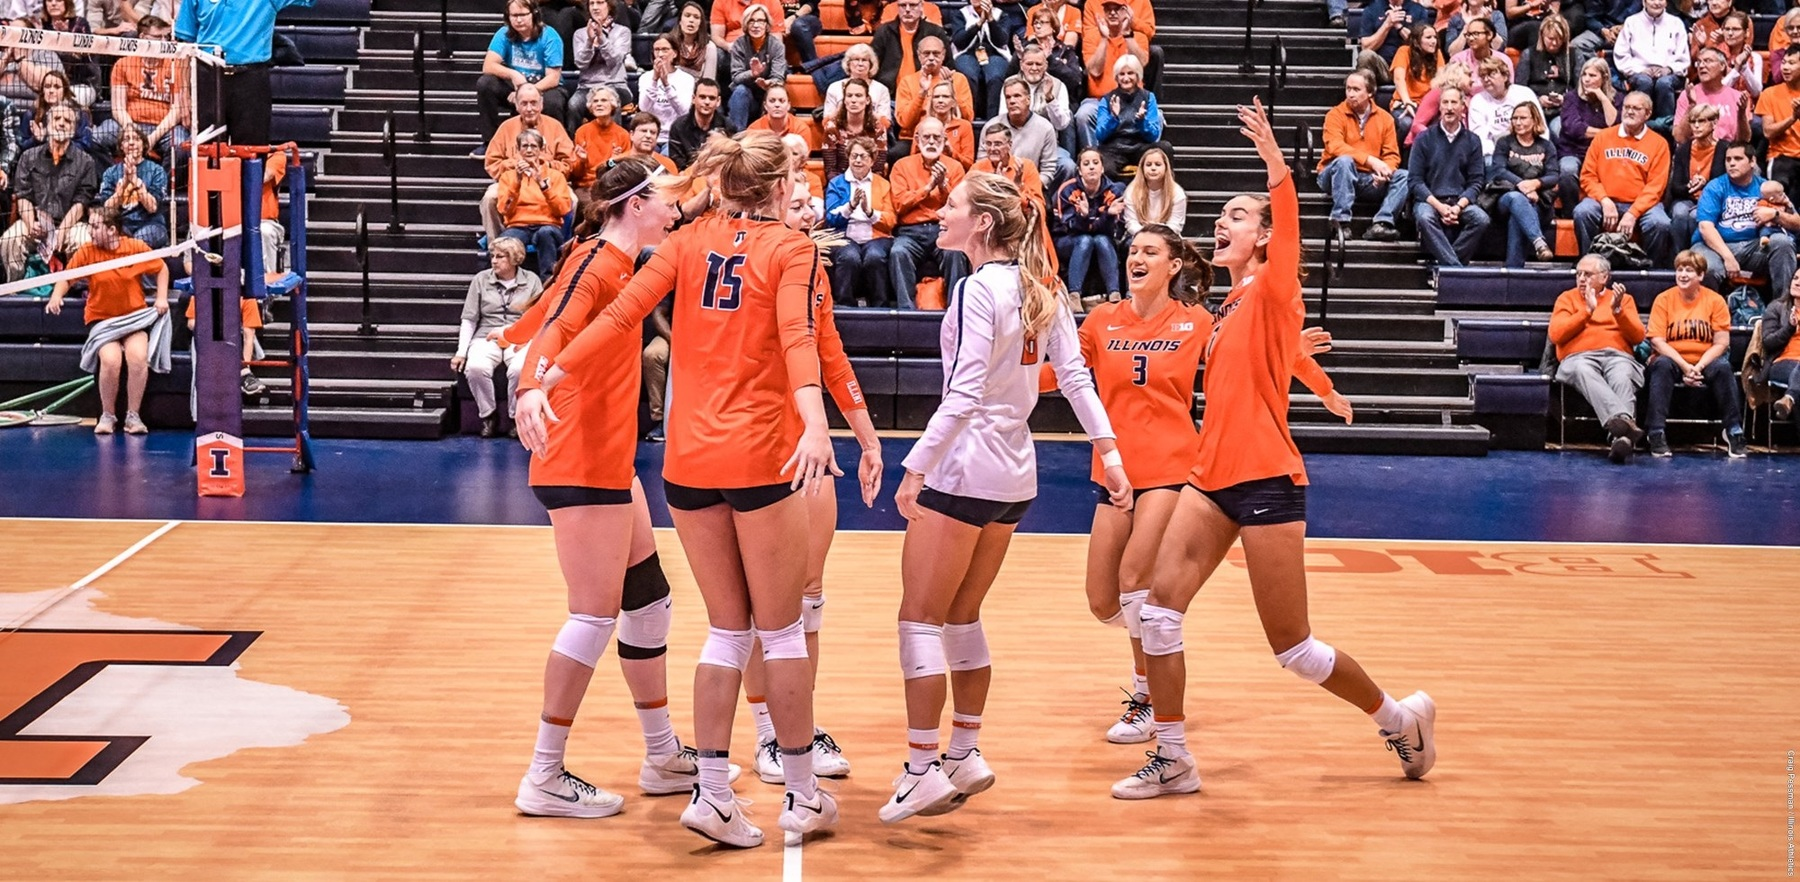 Illini volleyball players rejoice on their home court